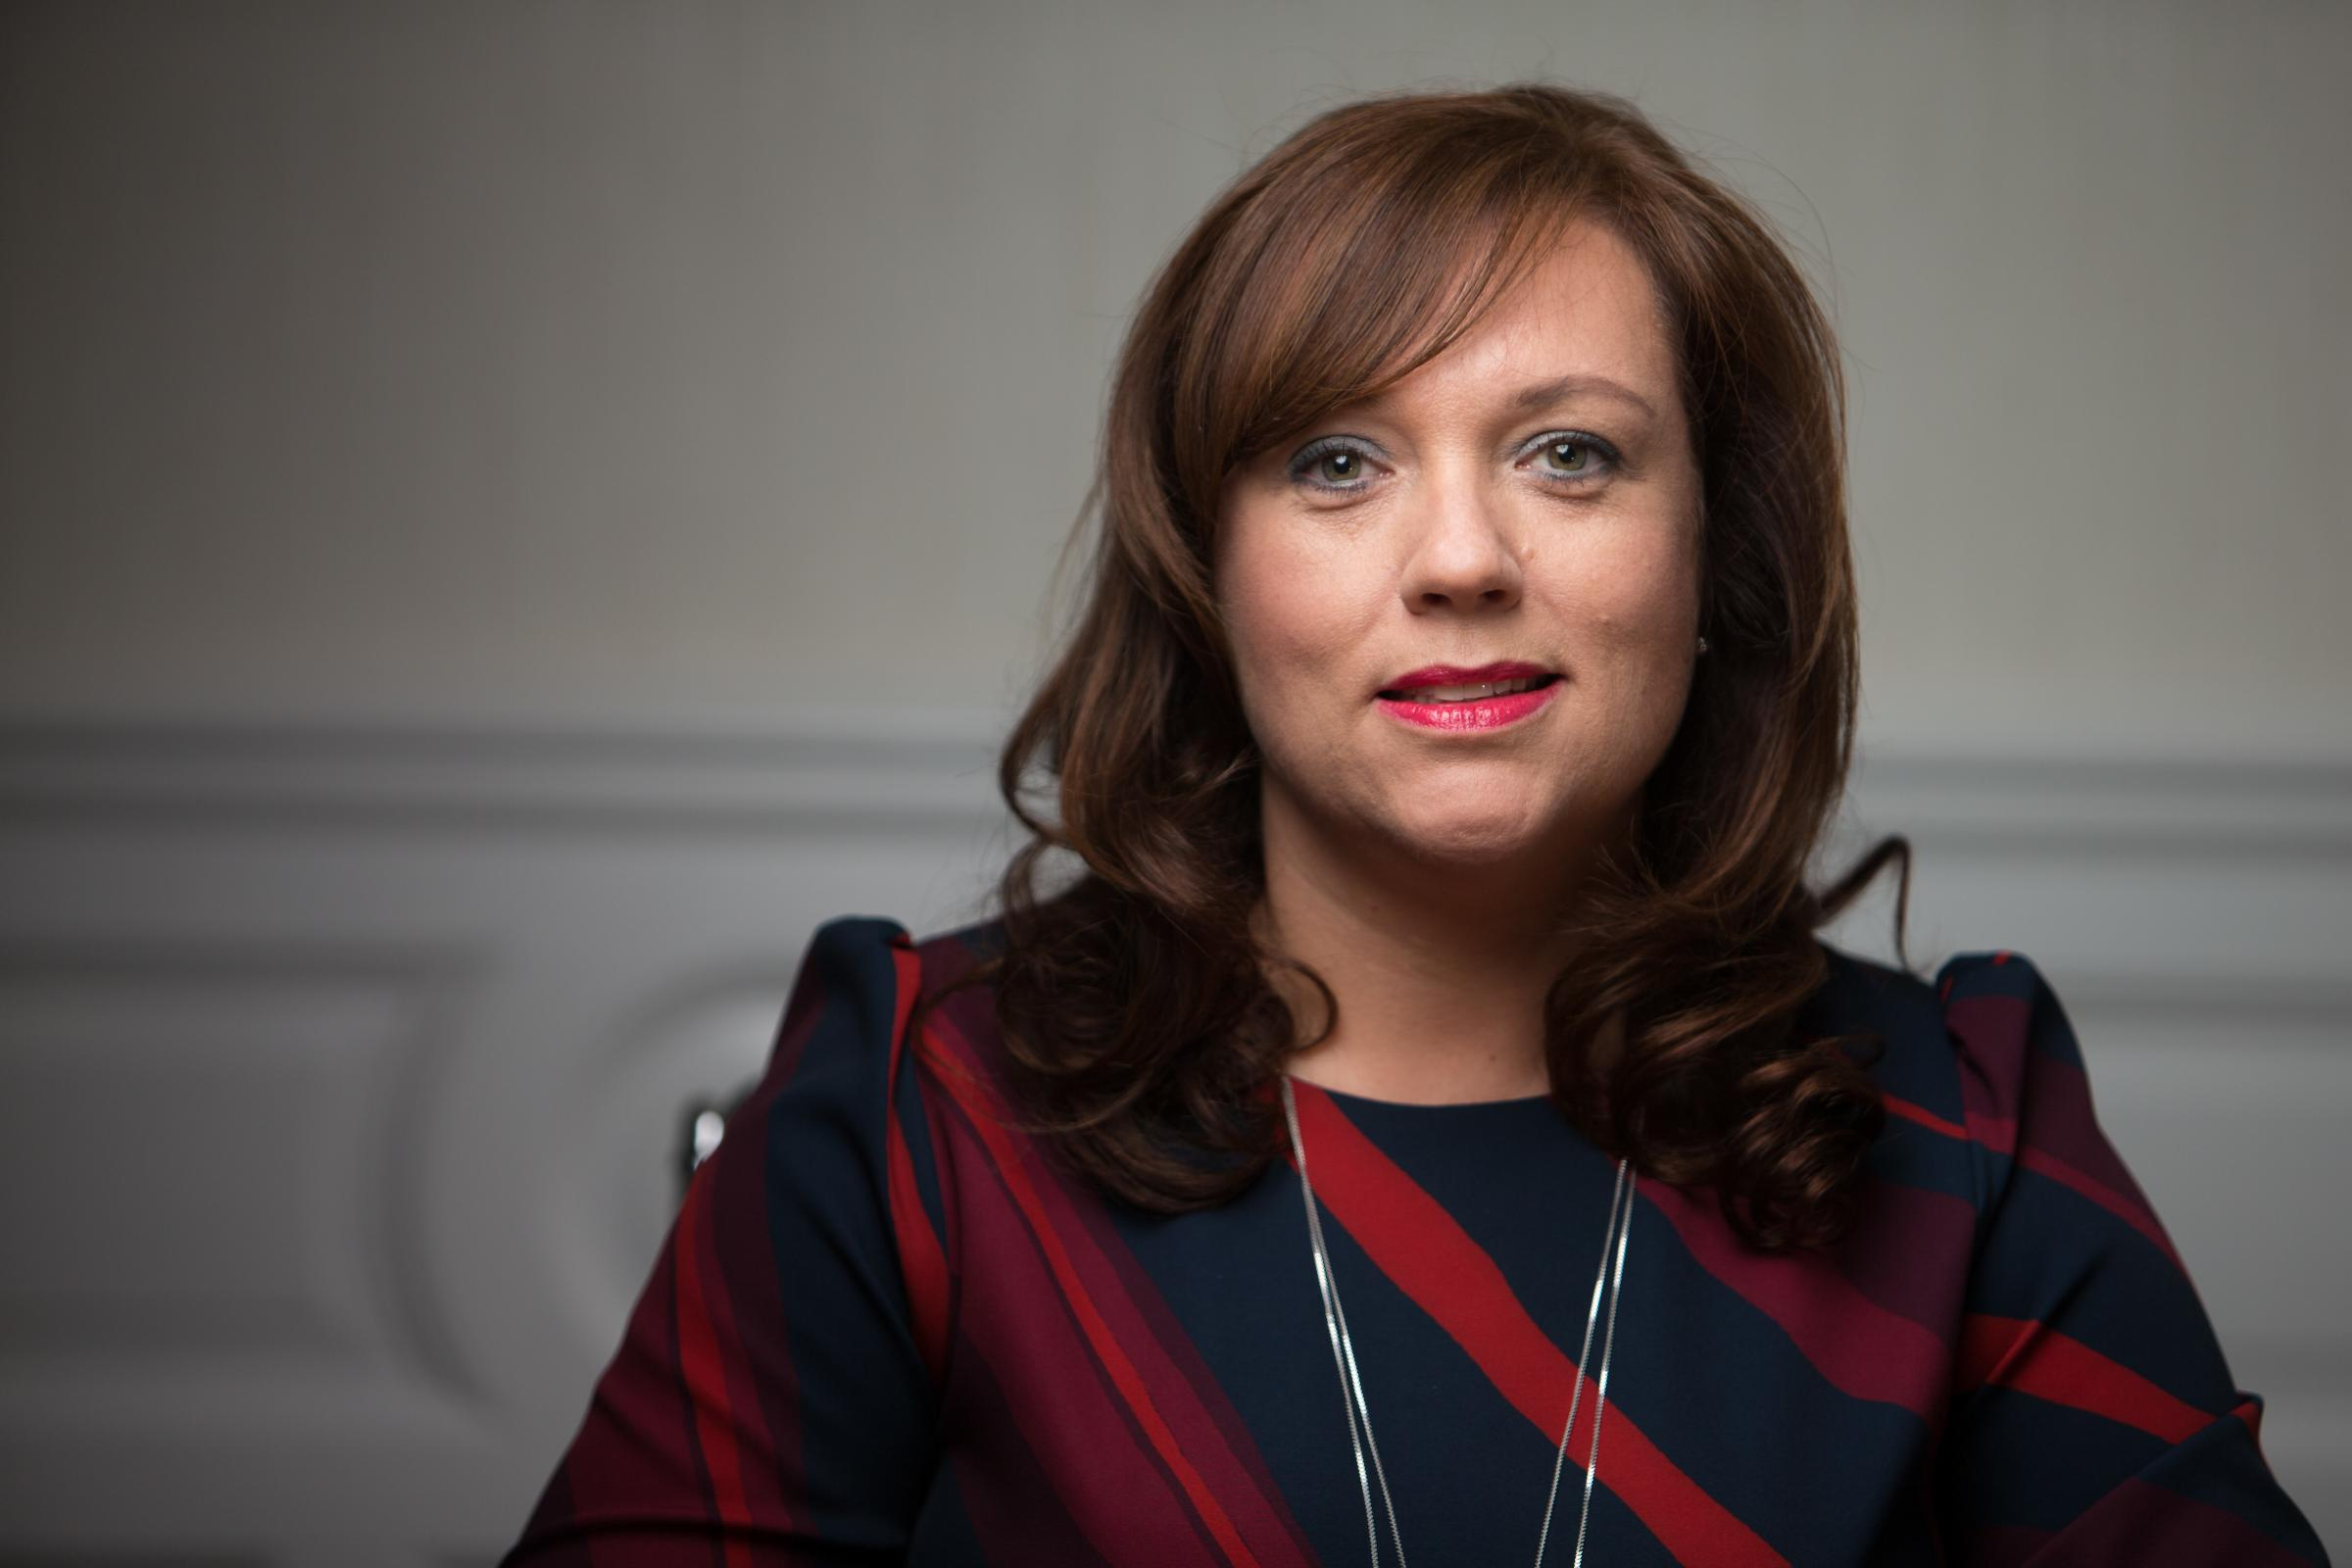 Aberdein Considine managing partner Jacqueline Law said expanding out of Aberdeen has helped the firm weather the oil and gas downturn.